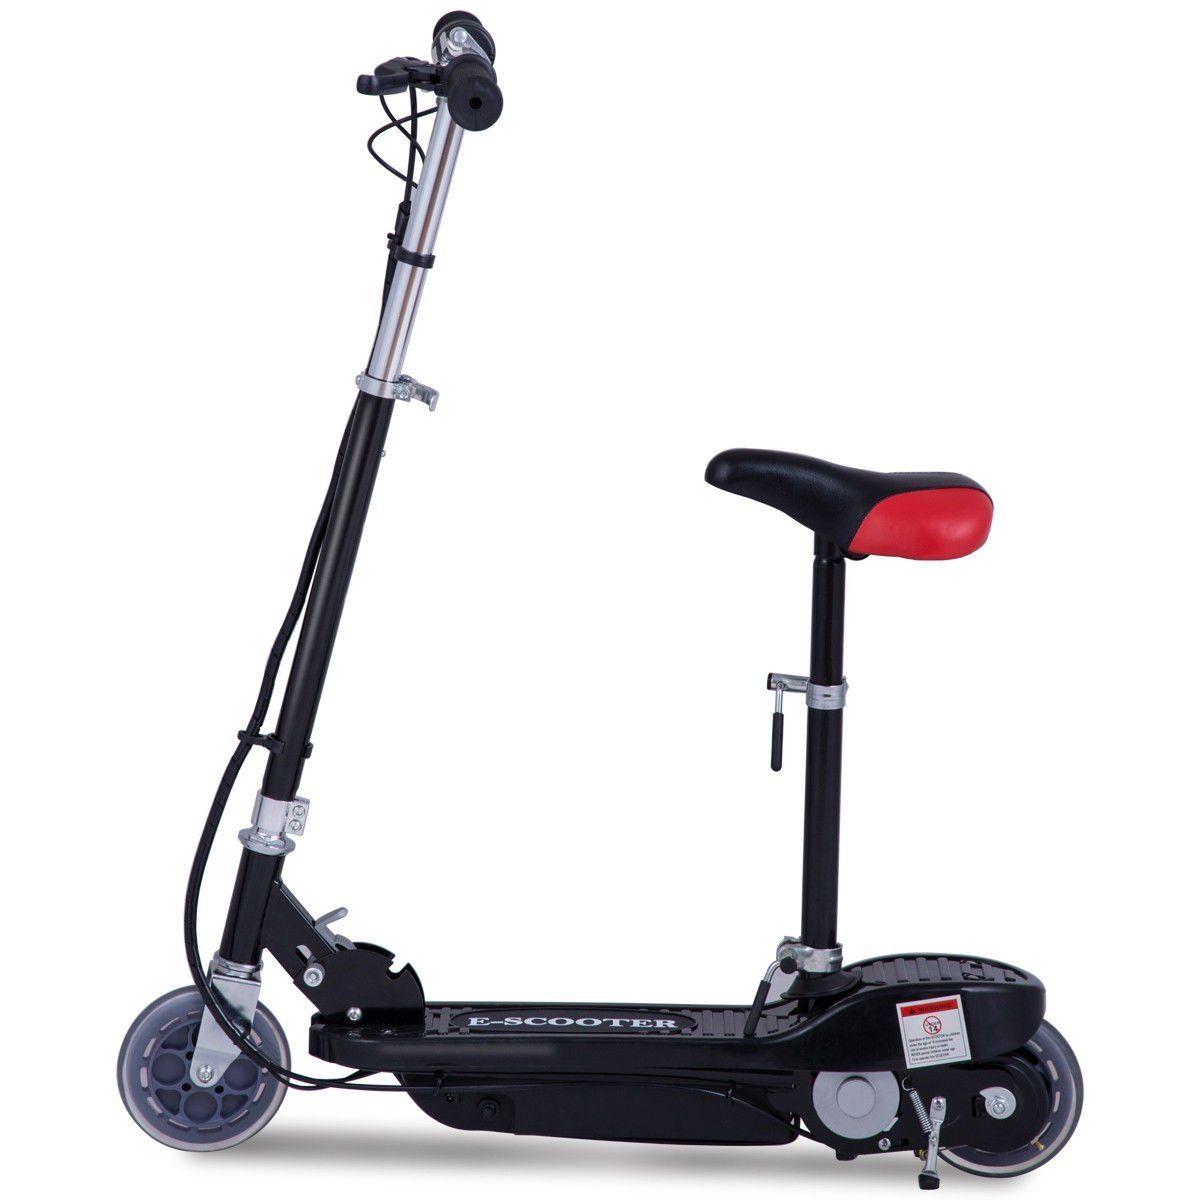 Scooter With Seat >> 7 Top 10 Best Electric Scooters With Seat Reviews In 2018 Top 10